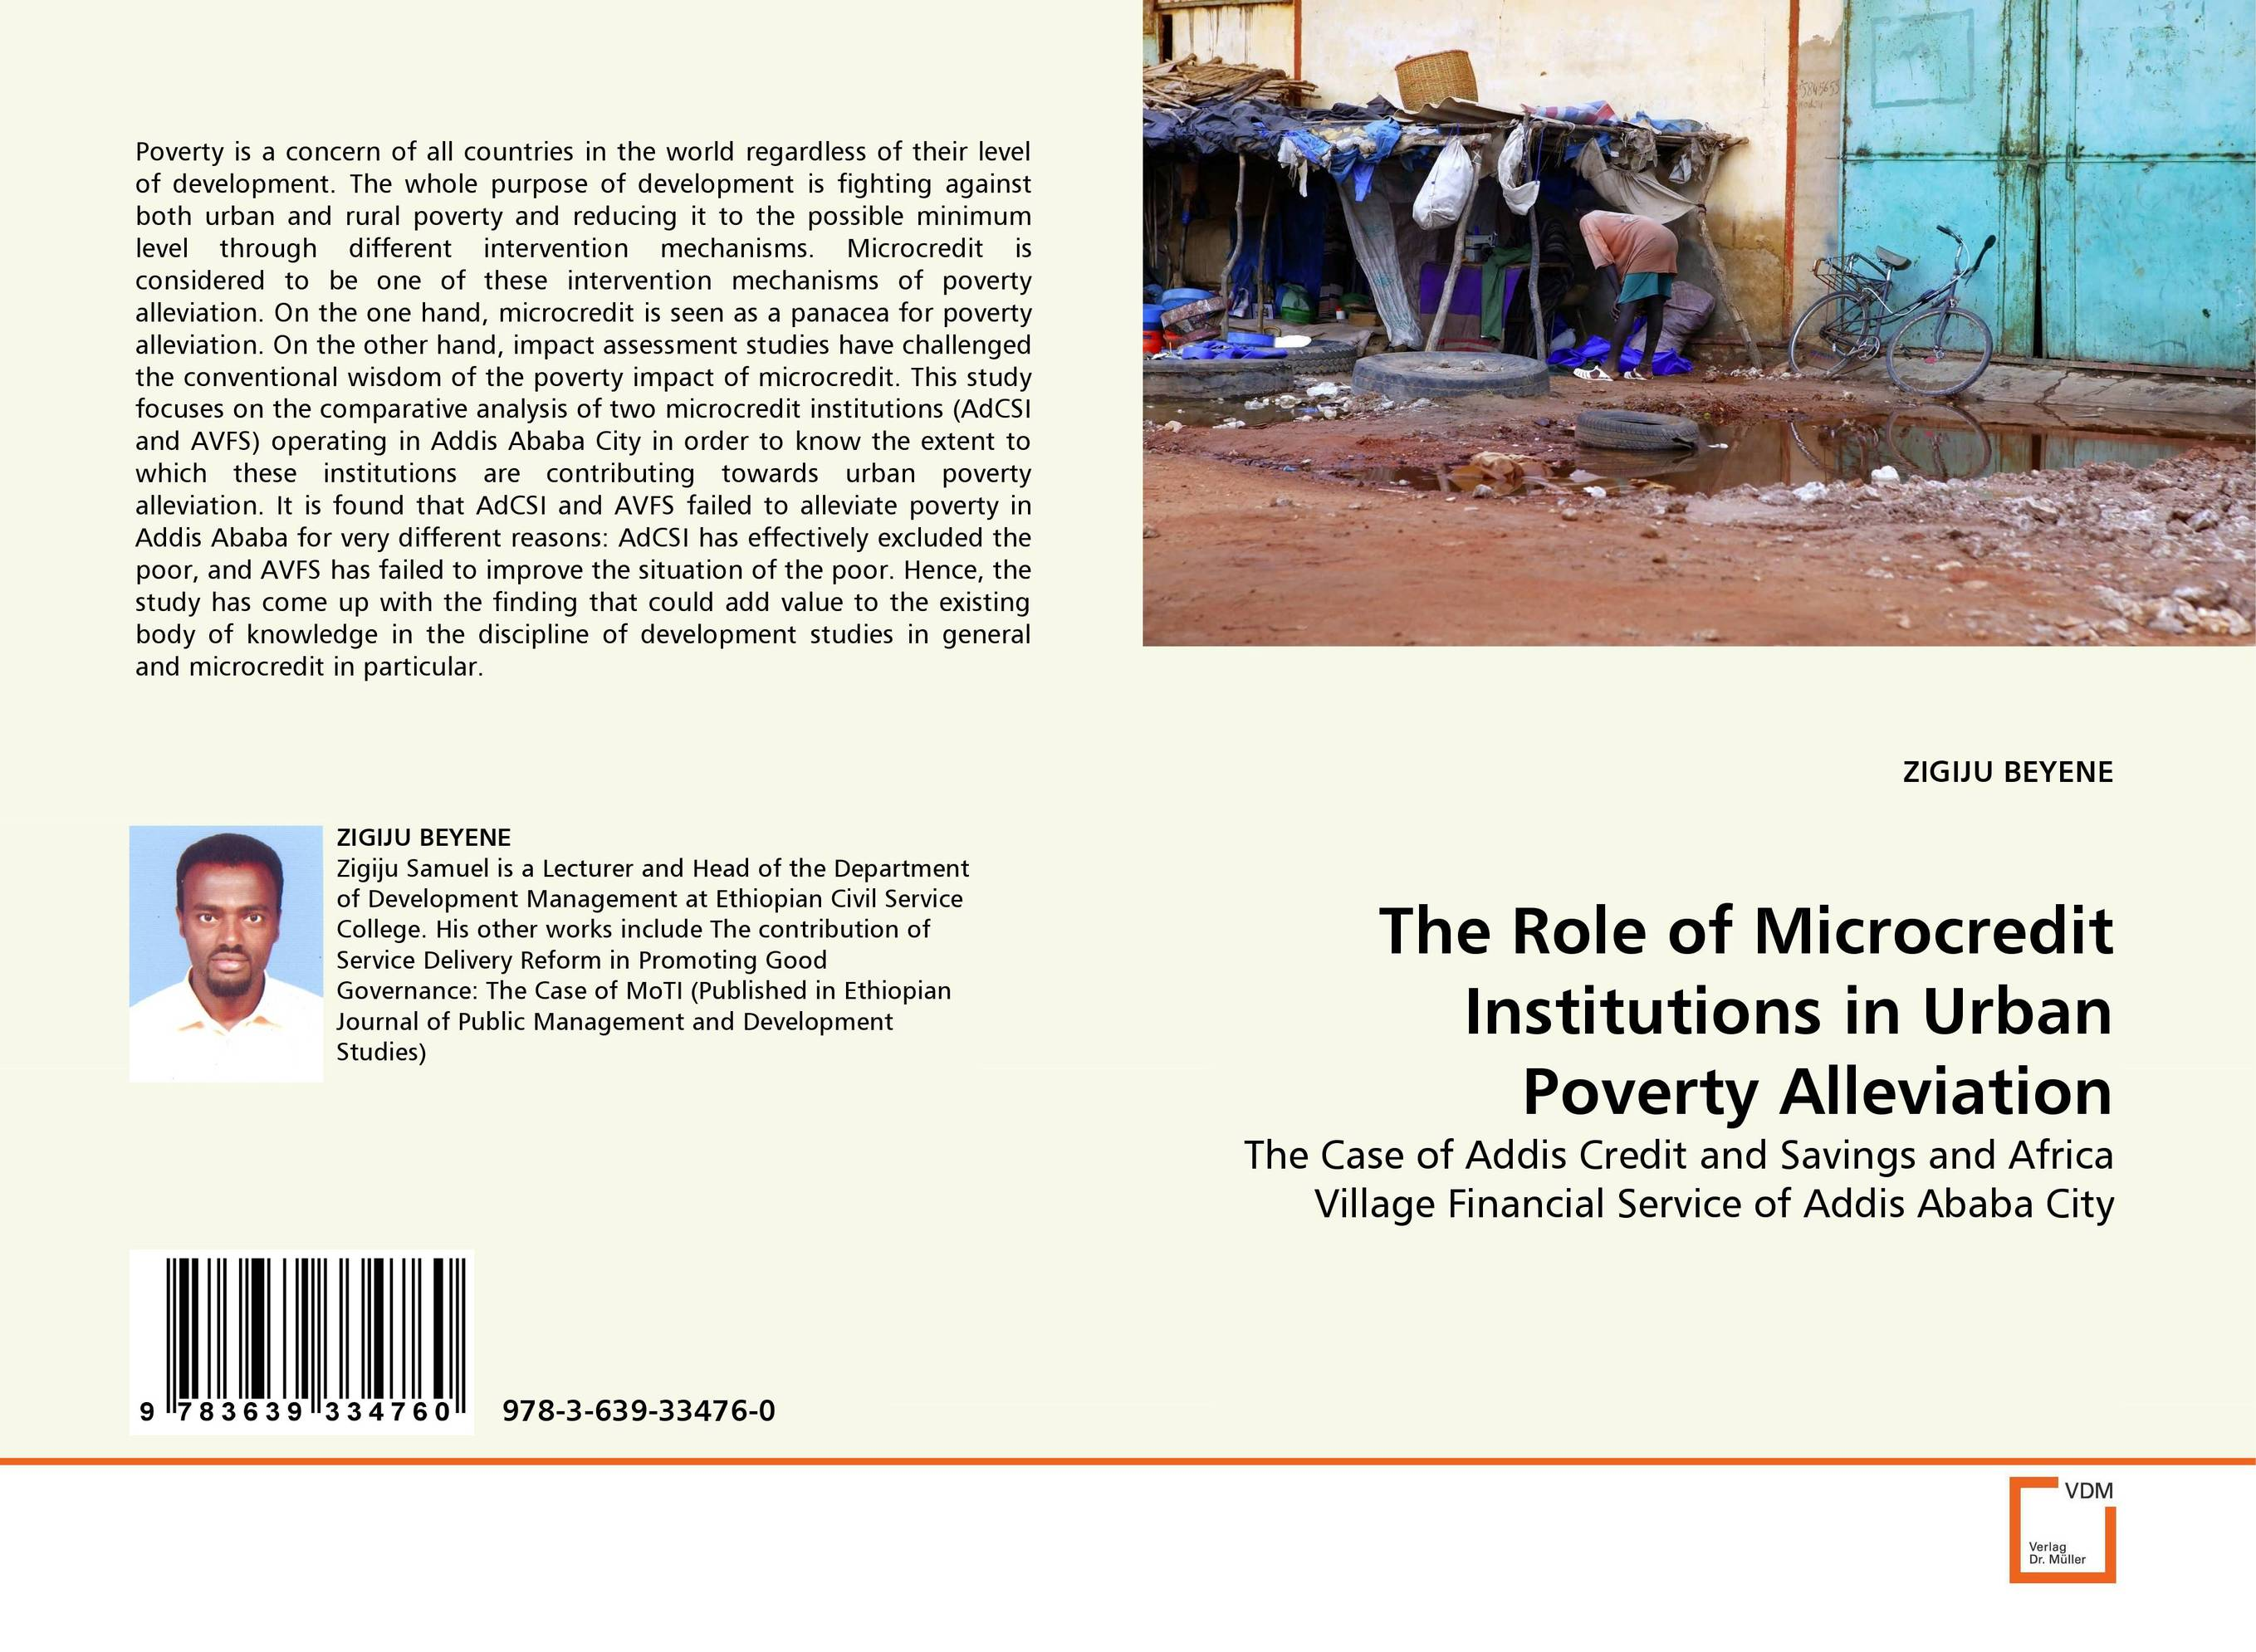 The Role of Microcredit Institutions in Urban Poverty Alleviation role of ict in rural poverty alleviation